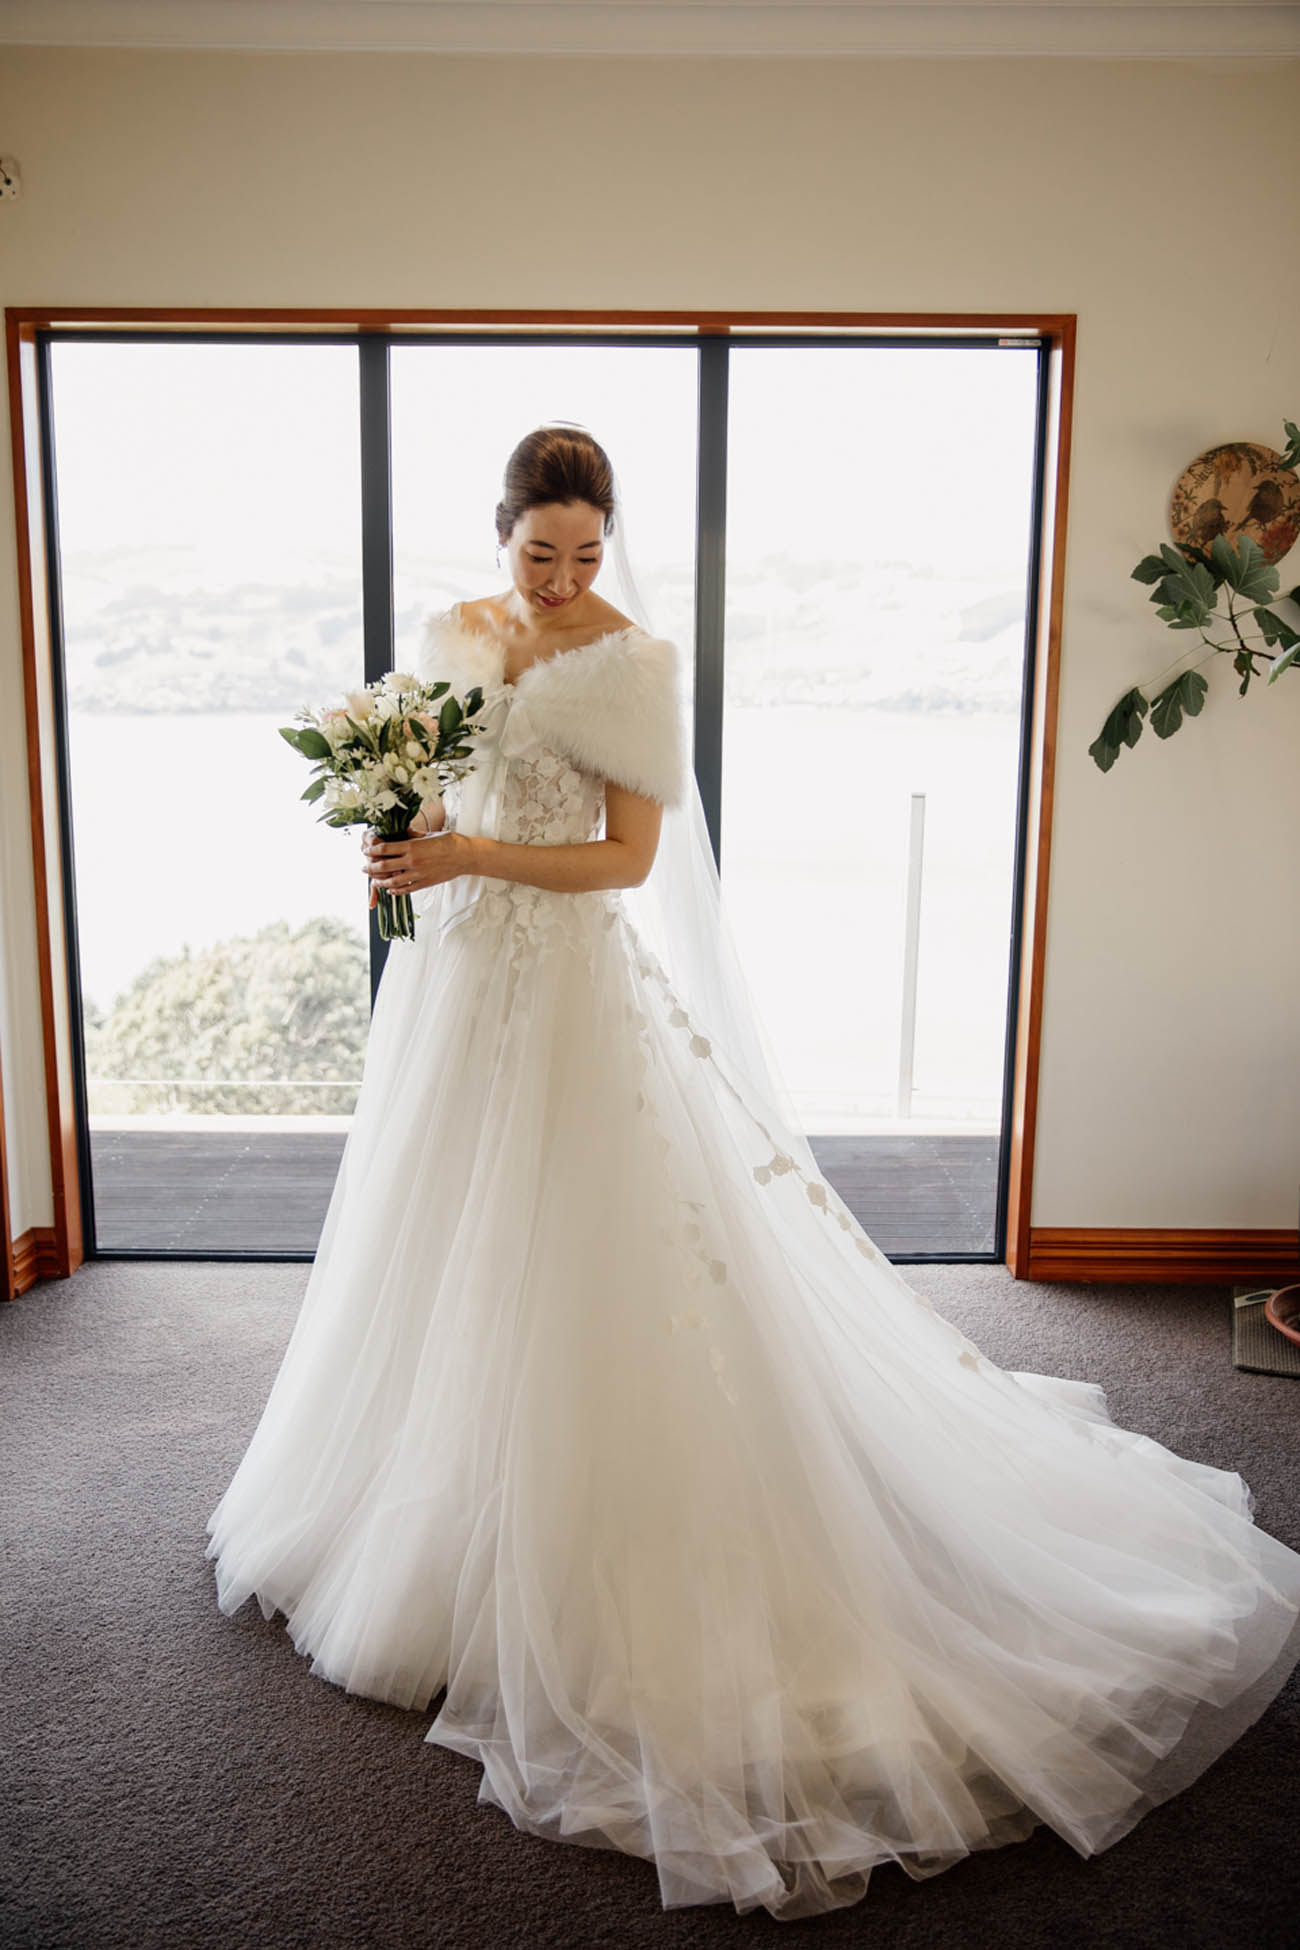 Lavant by Hera Couture wedding dress